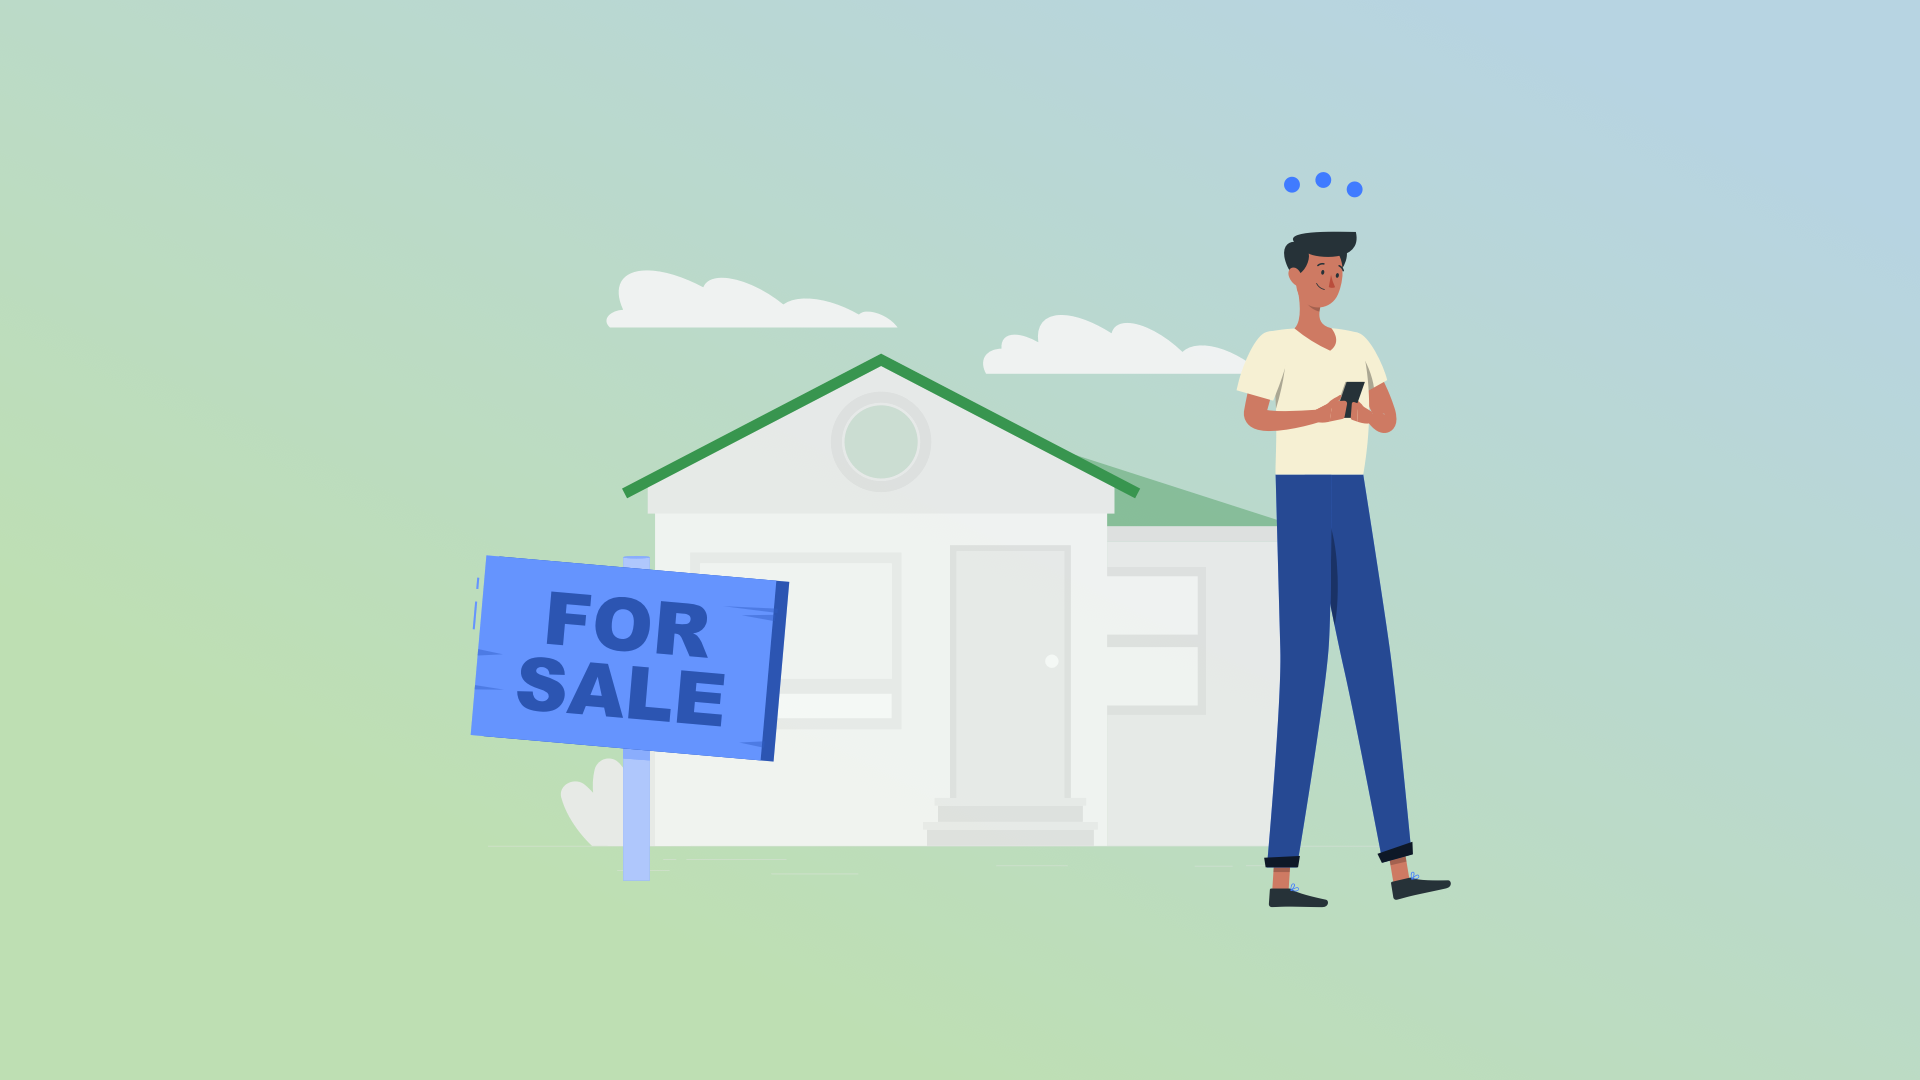 5 Reasons Why You Should Use Chatbots for Your Real Estate Business